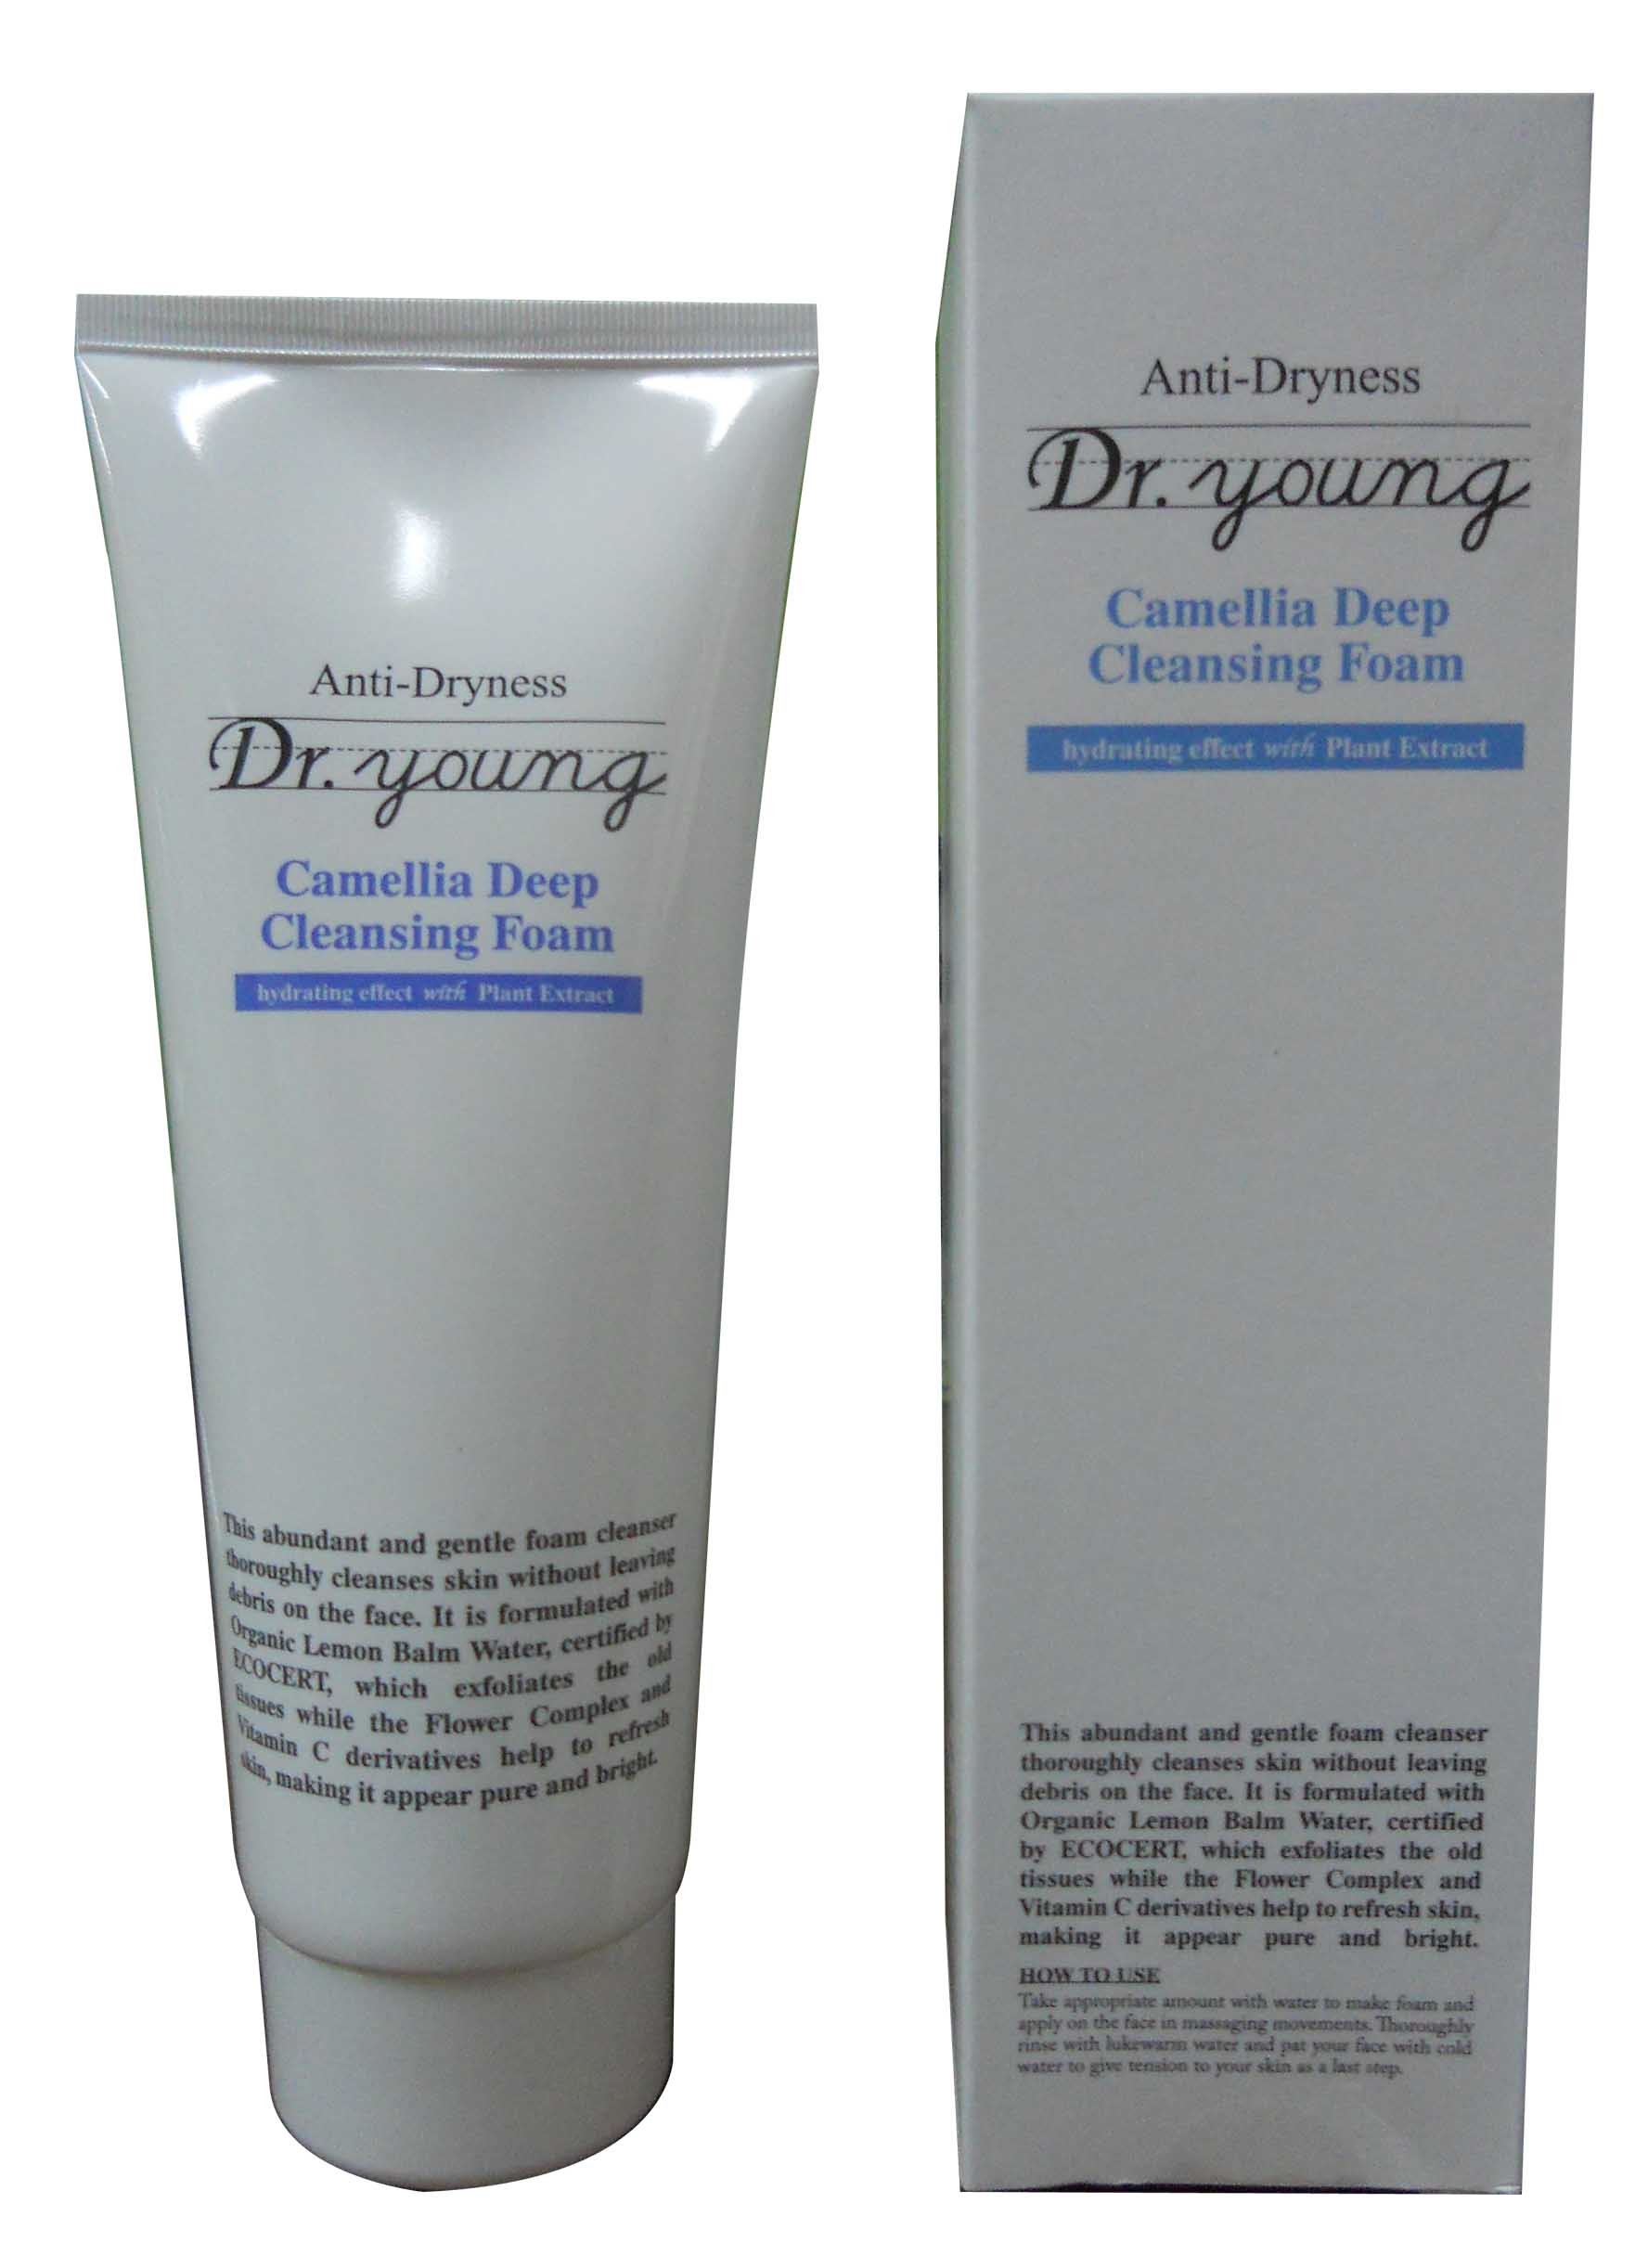 Anti-Dryness (Camellia Deep Cleansing Foam)